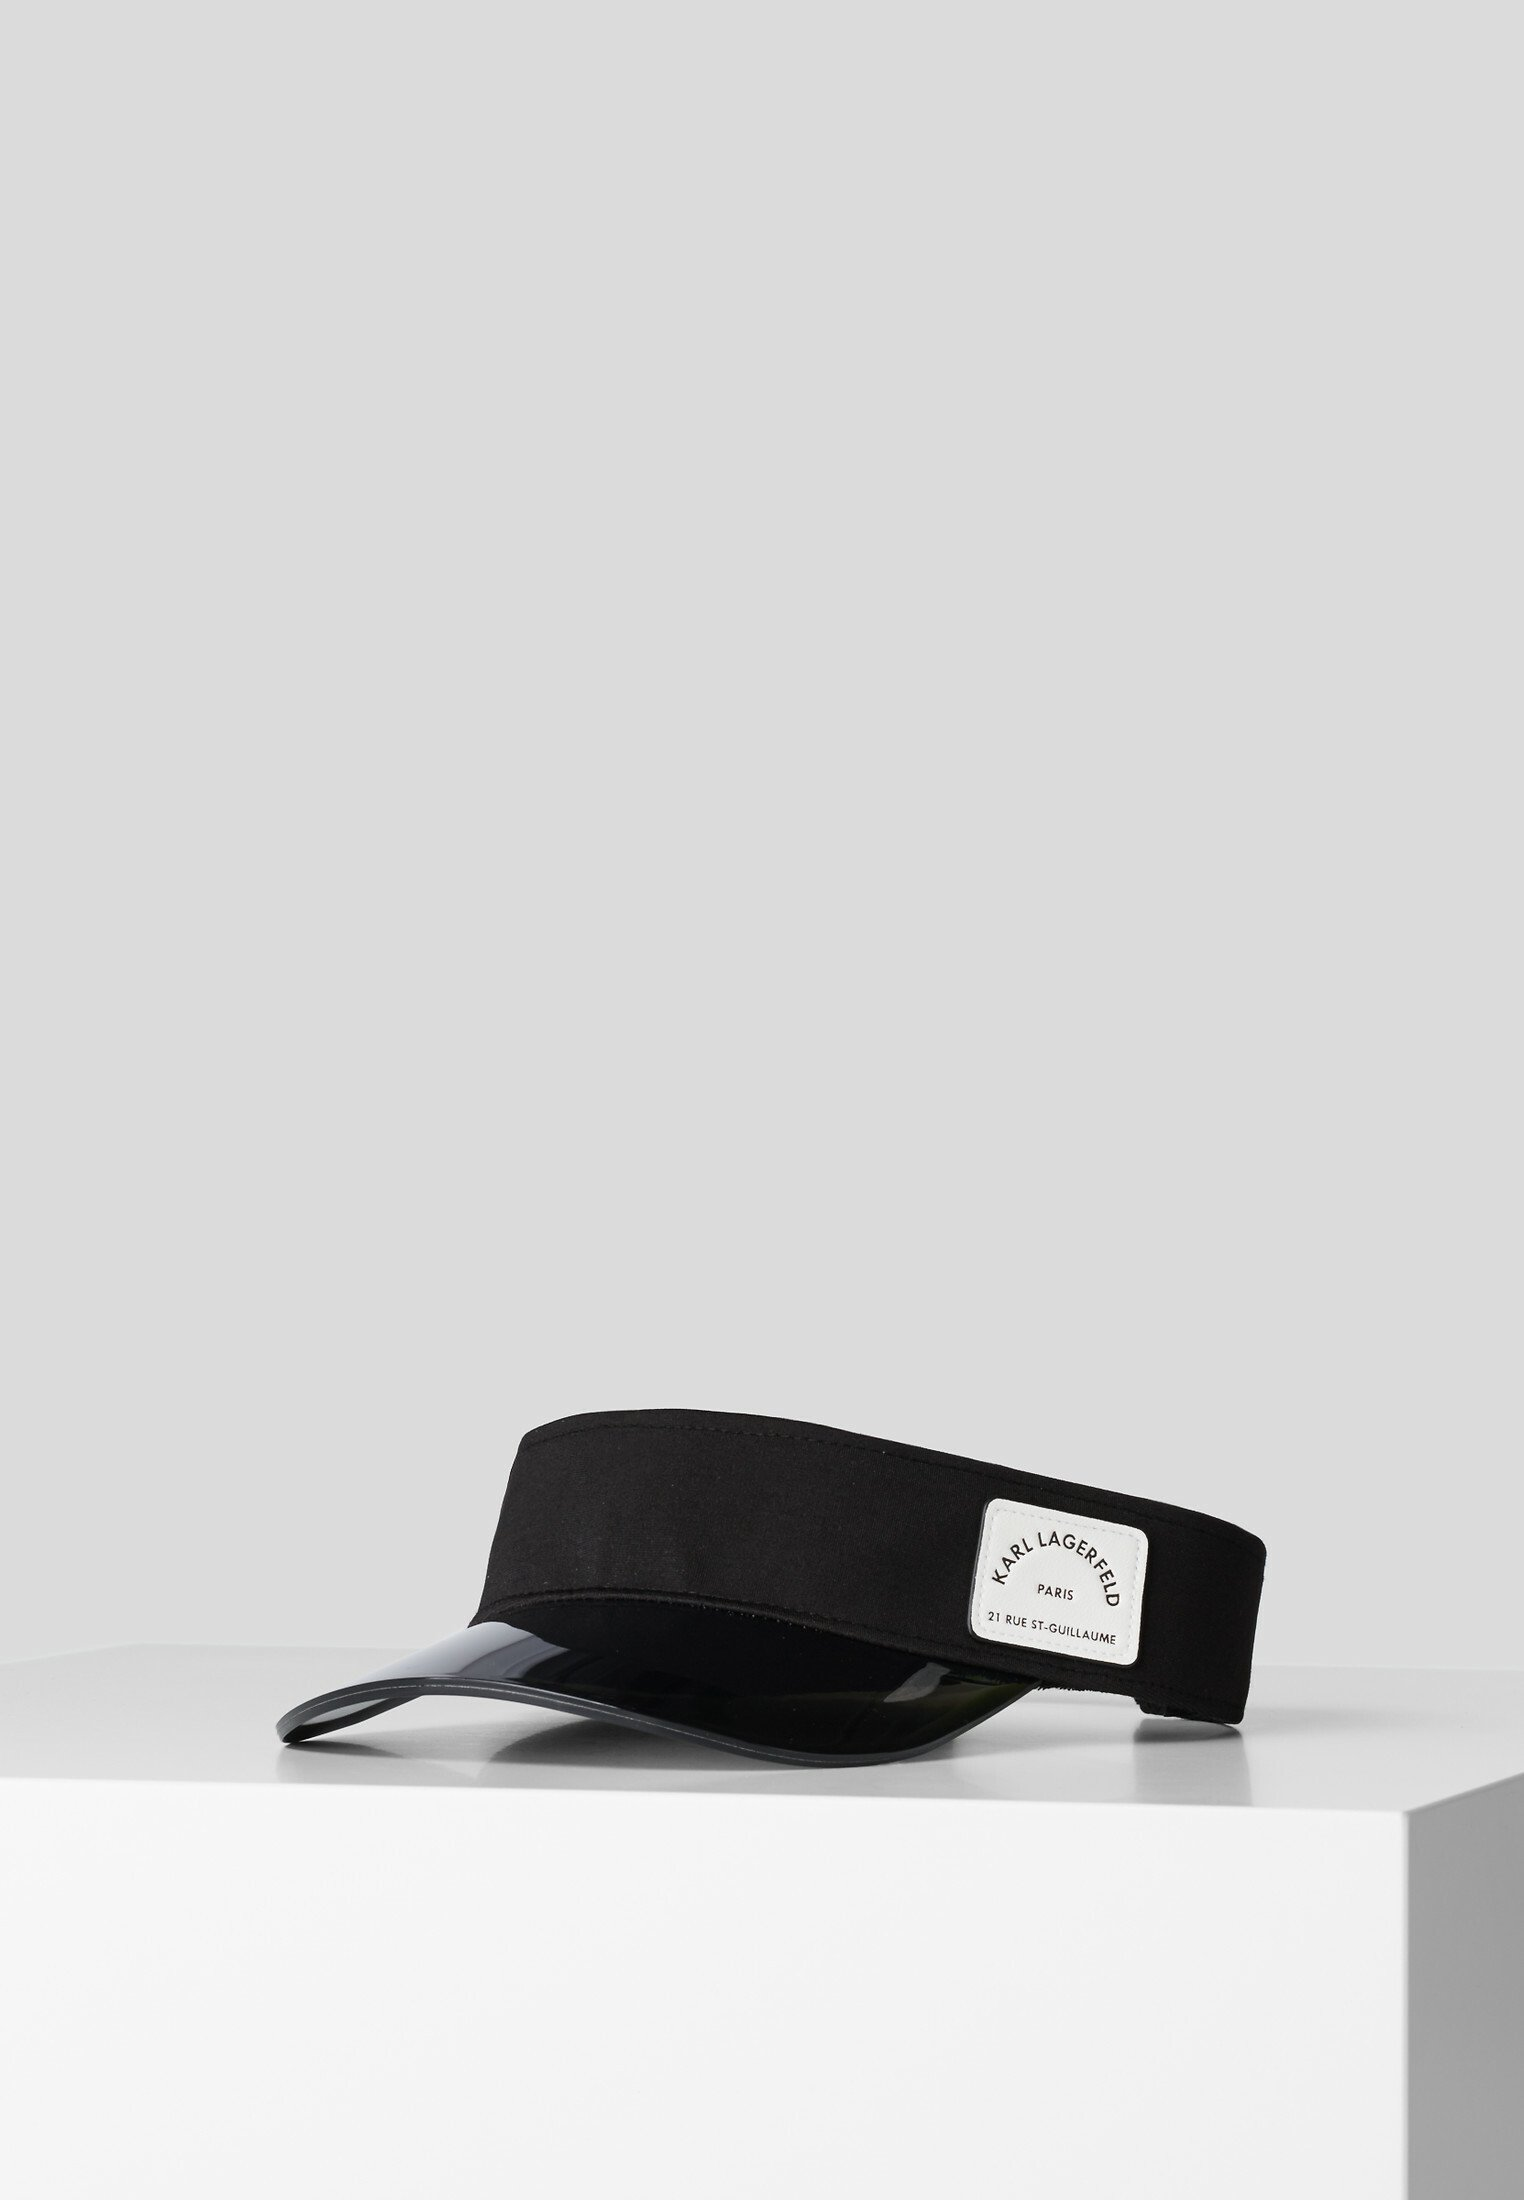 New And Fashion Accessories KARL LAGERFELD Cap black/ white U7z1NGcSk